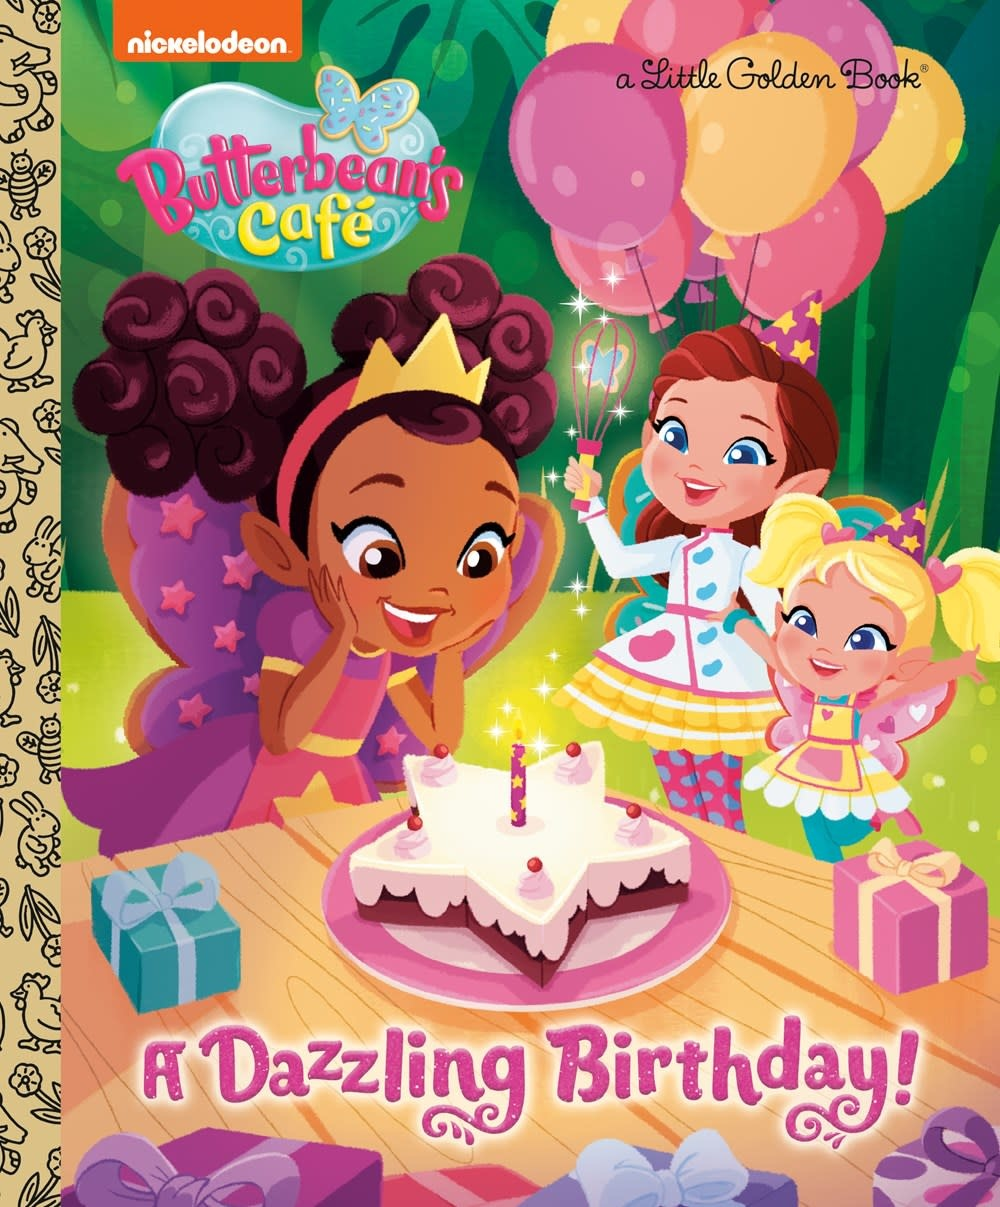 Golden Books Butterbean's Cafe: A Dazzling Birthday!